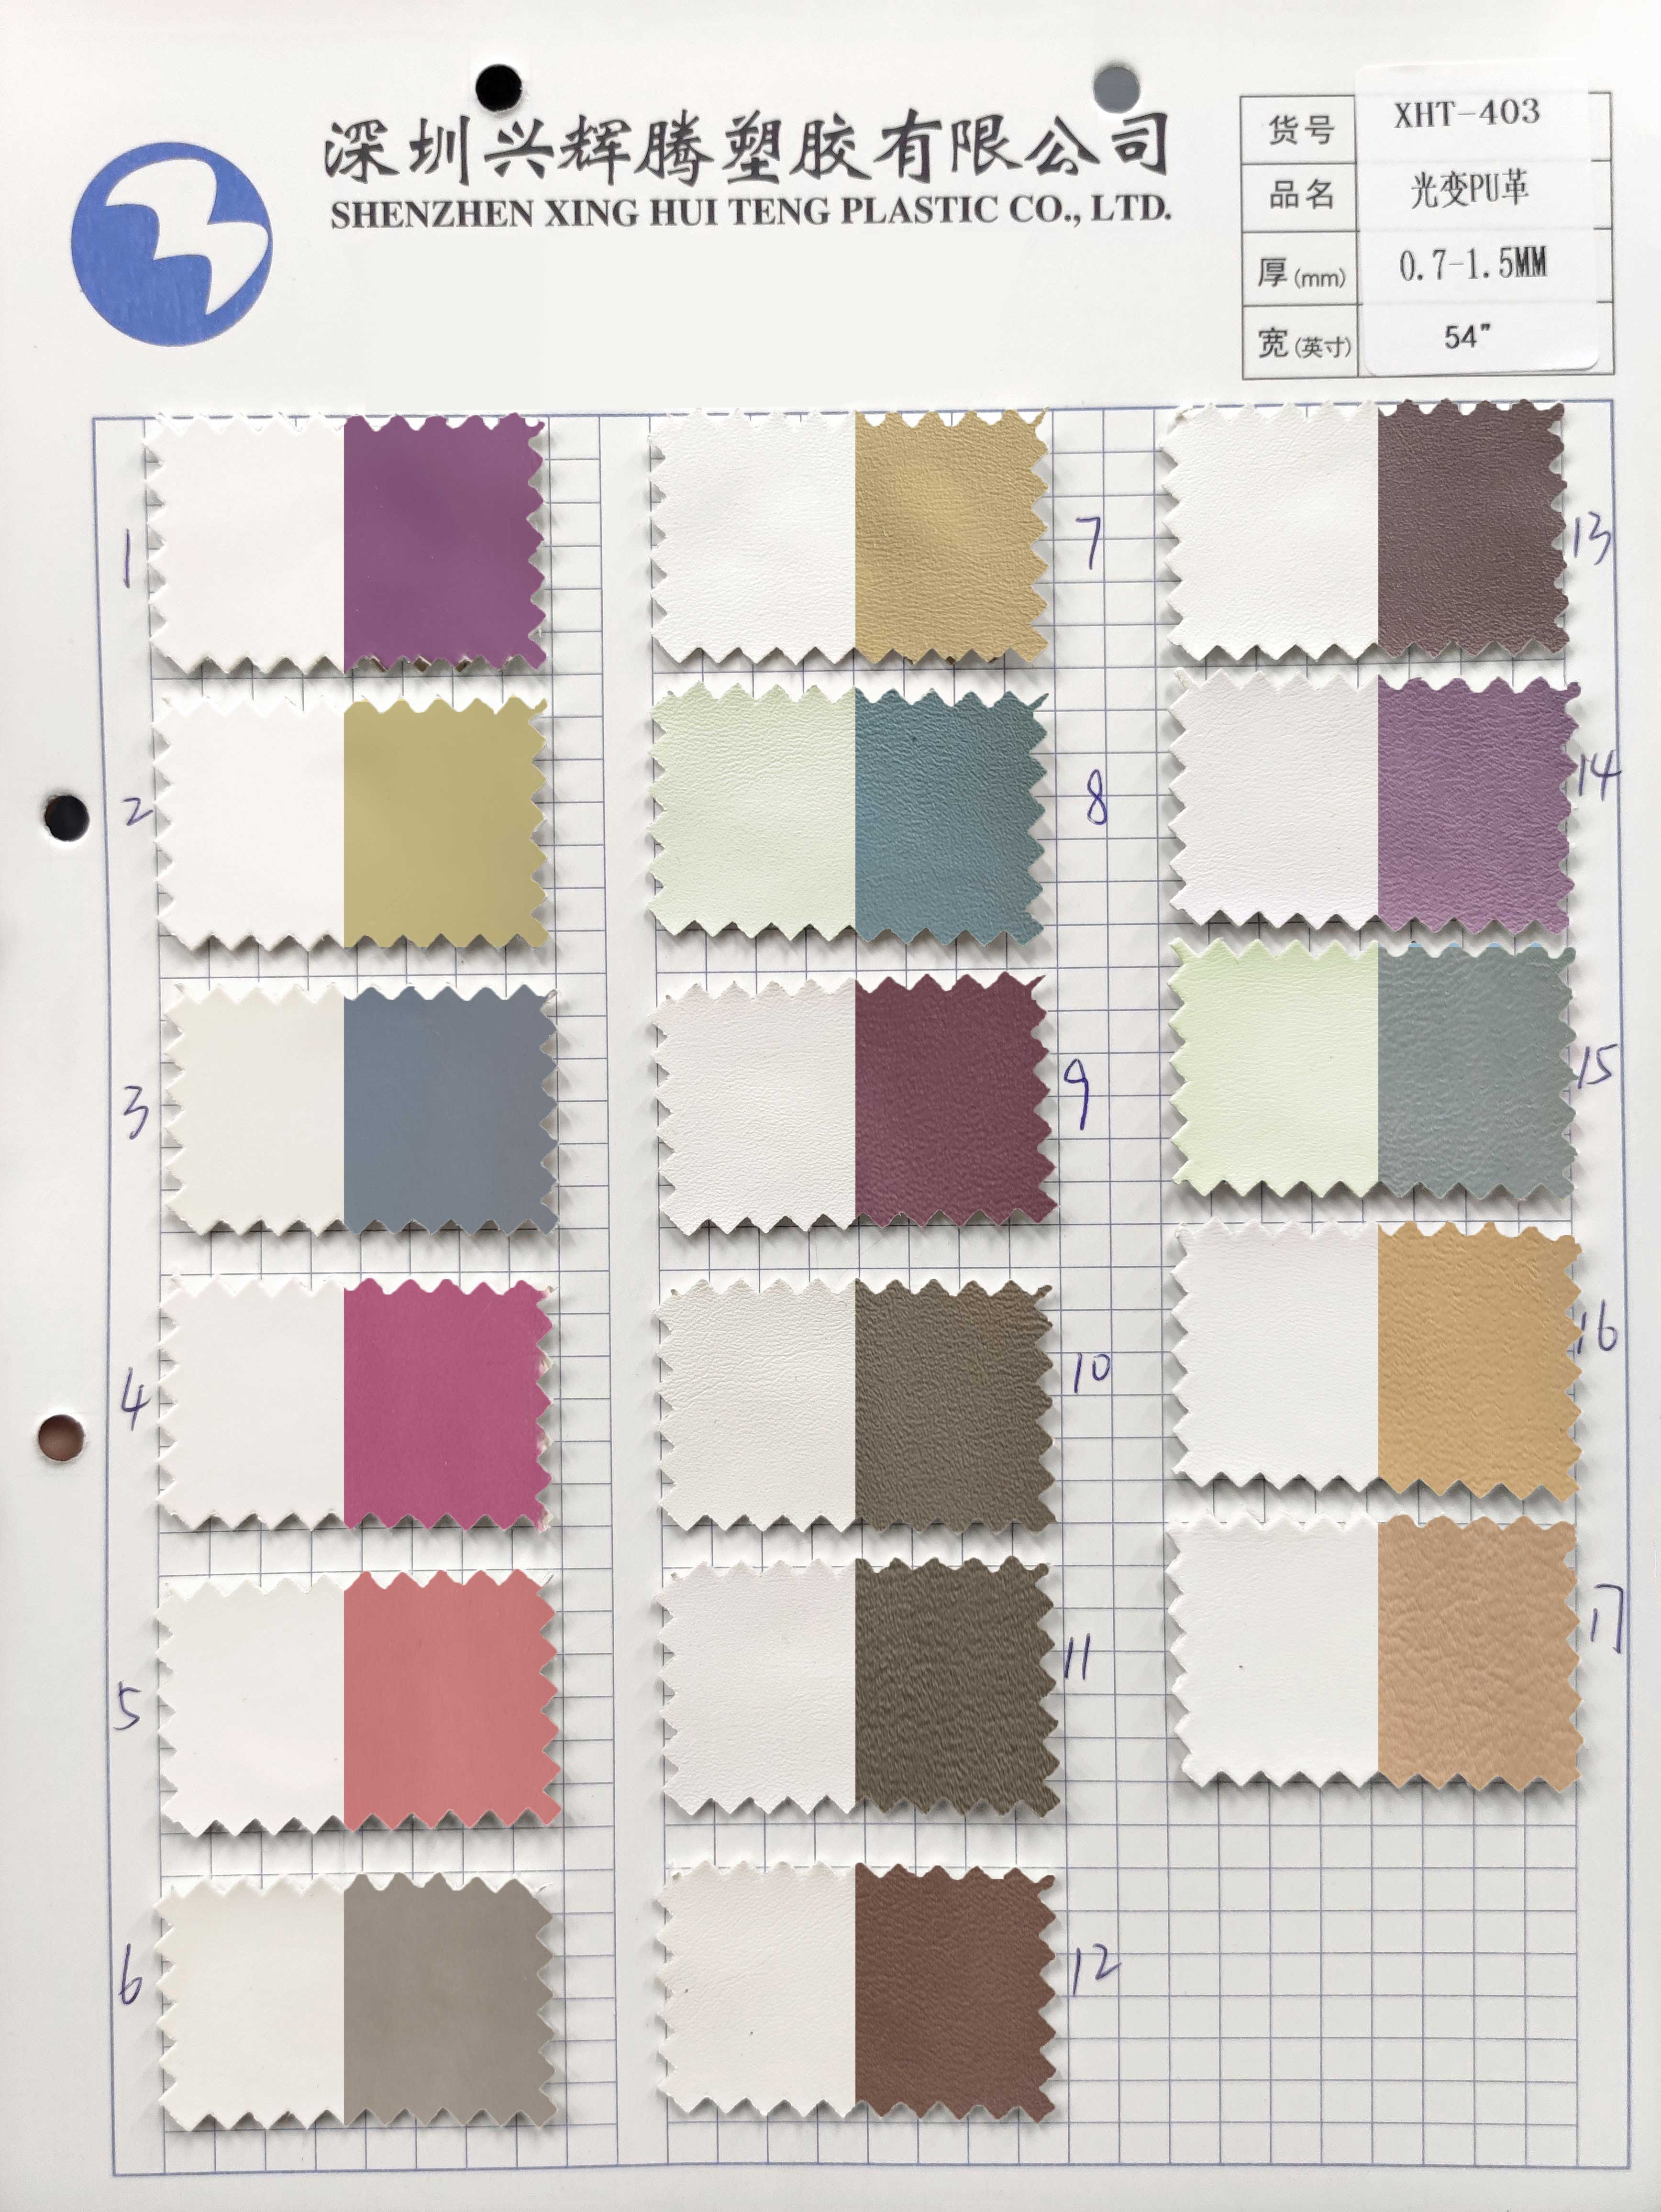 Photochromic Color Change with the Light Faux Synthetic PU Leather Fabric